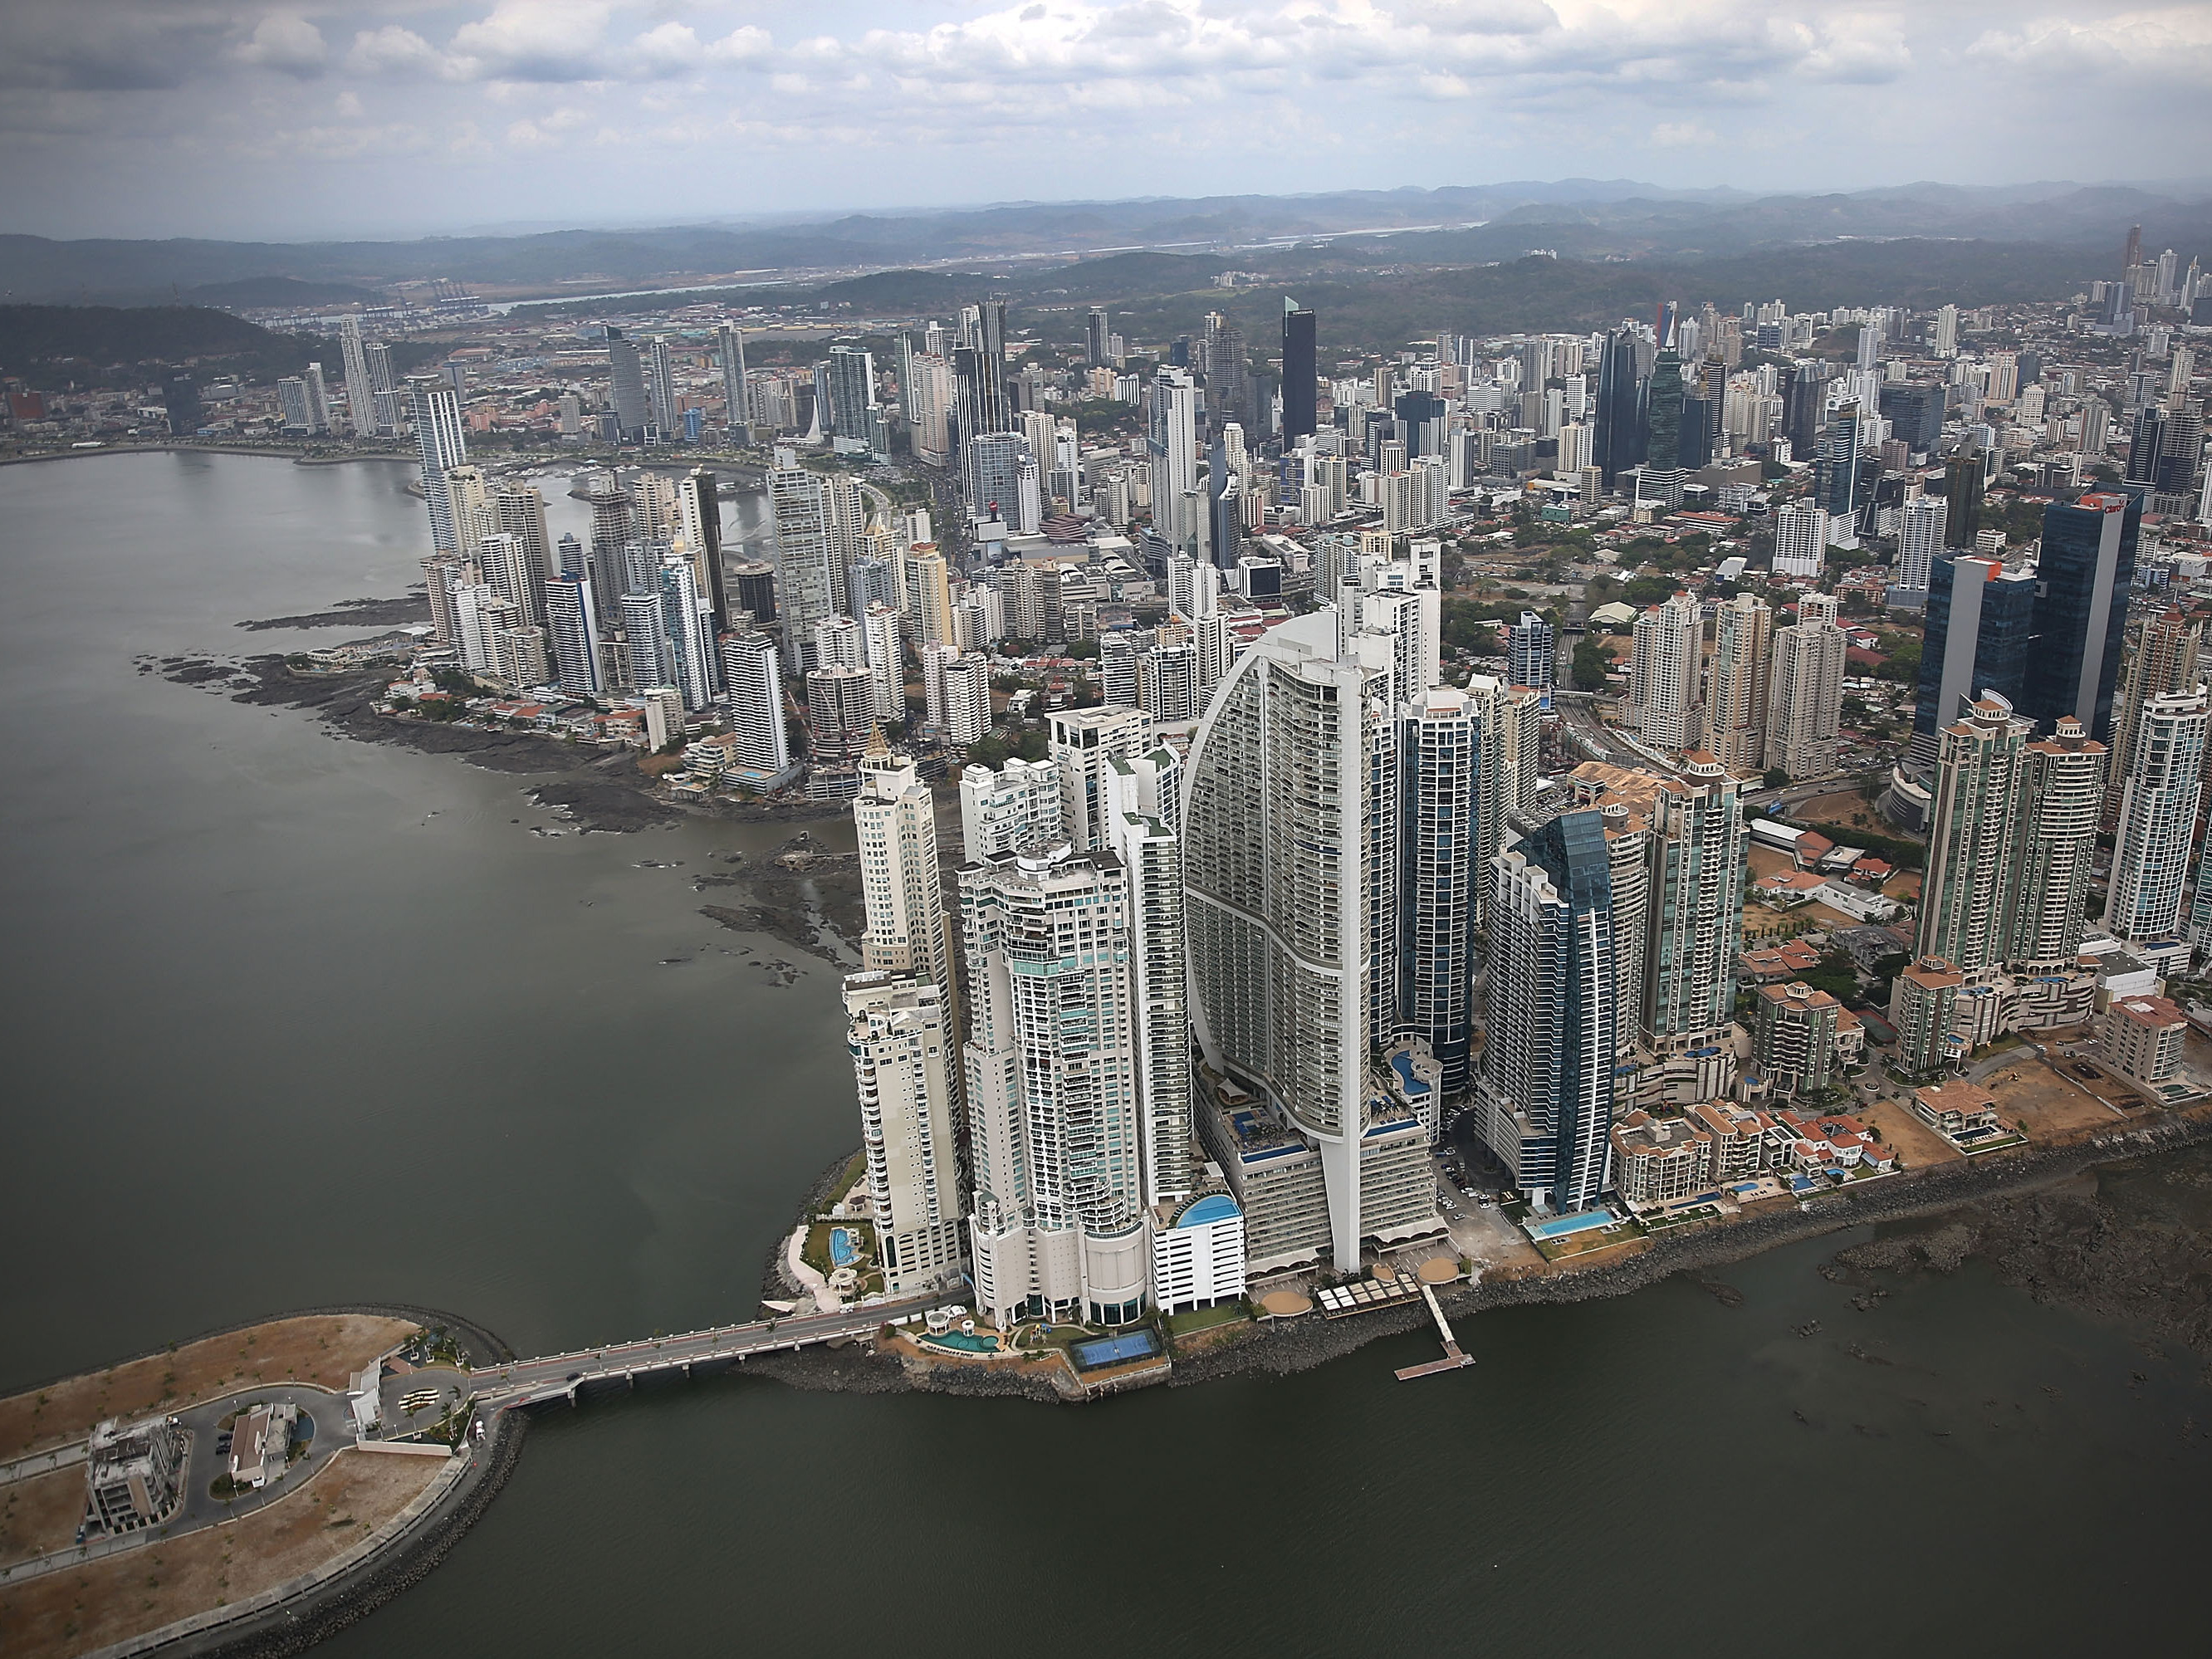 Panama Papers Fallout Hurts A Reputation Panama Thought It Had Fixed